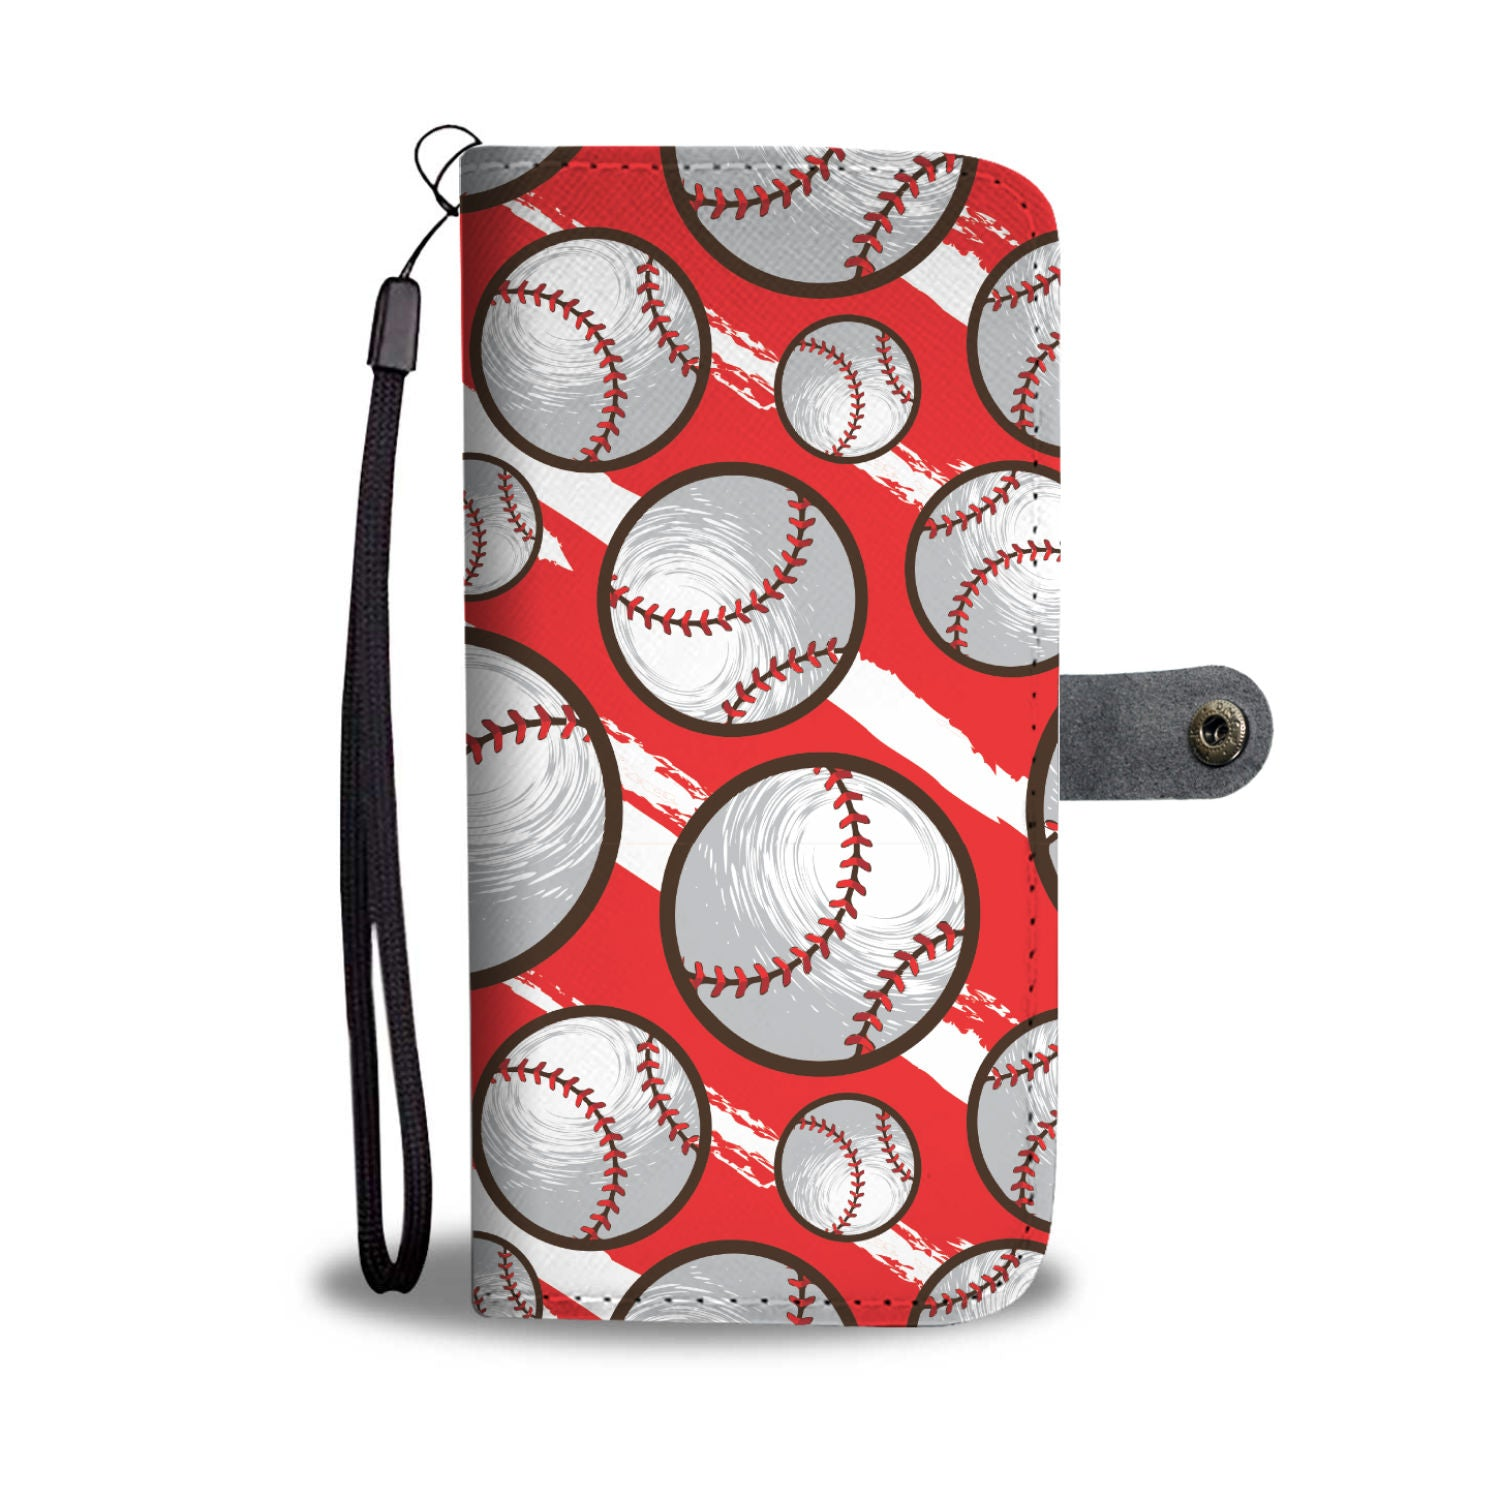 BASEBALL 05 WALLET CASE